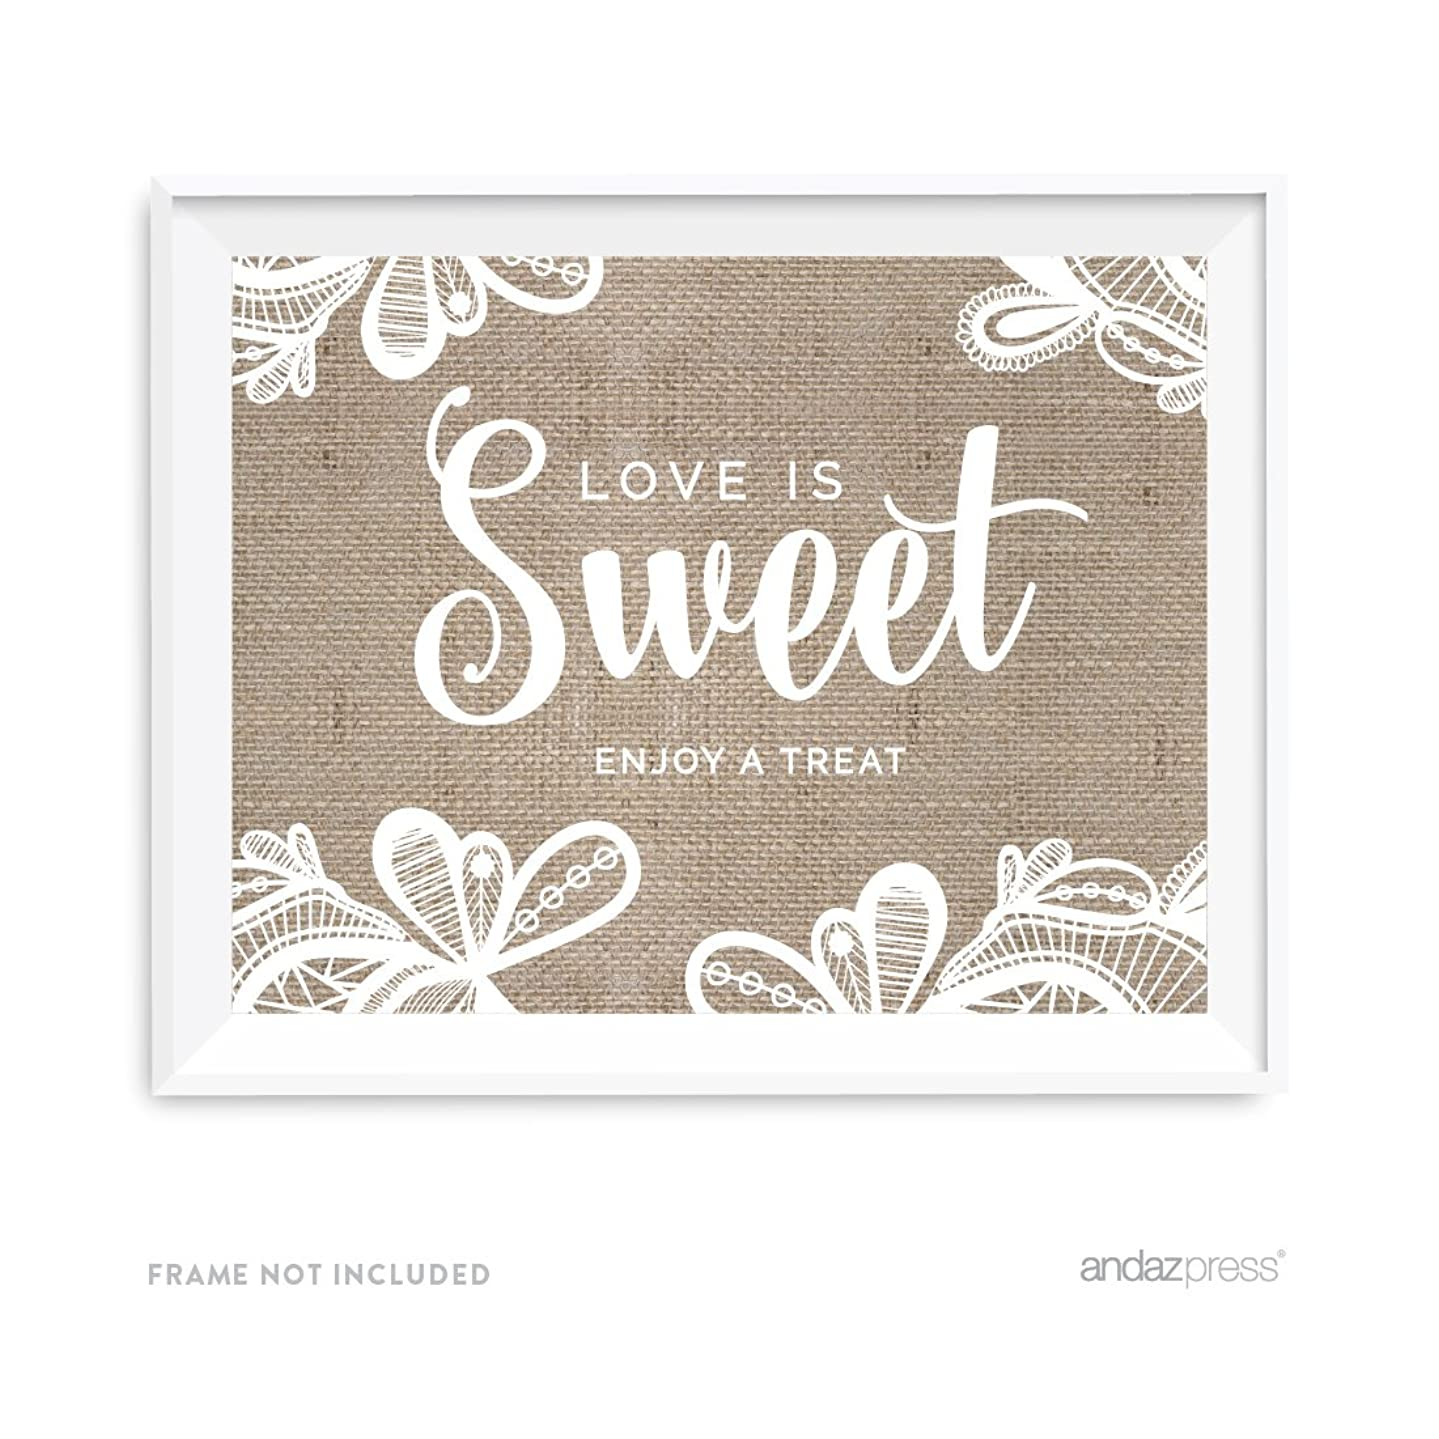 Andaz Press Burlap Lace Print Wedding Collection, Party Signs, Love is Sweet, Enjoy a Treat Dessert Table Sign, 8.5x11-inch, 1-Pack